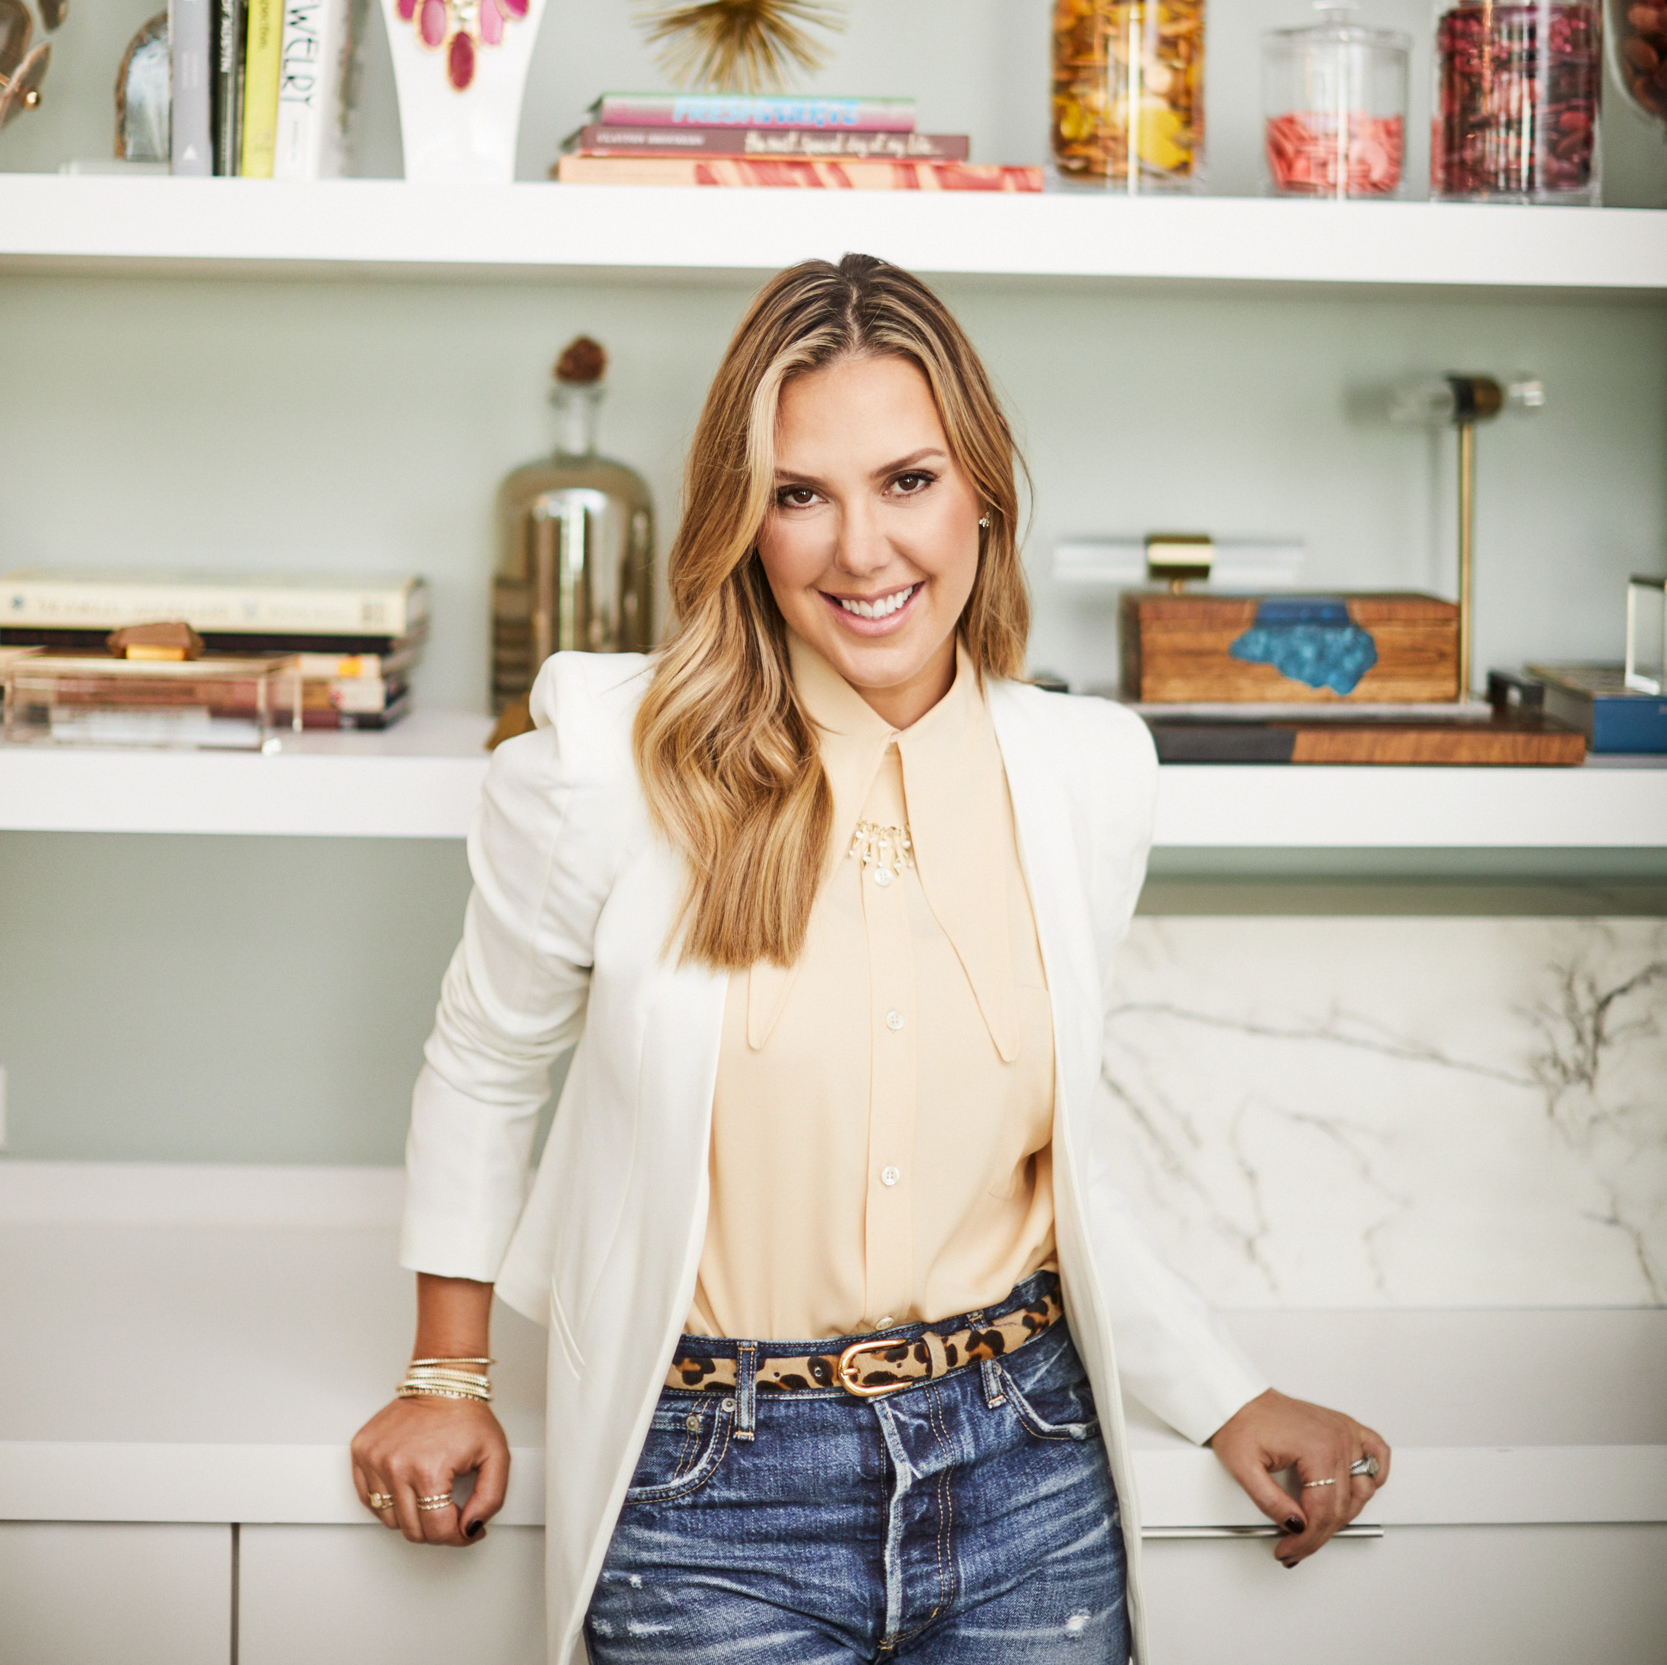 2nd Annual Unstoppable: Passion for a Purpose Luncheon to Feature Kendra Scott of Kendra Scott Jewelry as Keynote Speaker